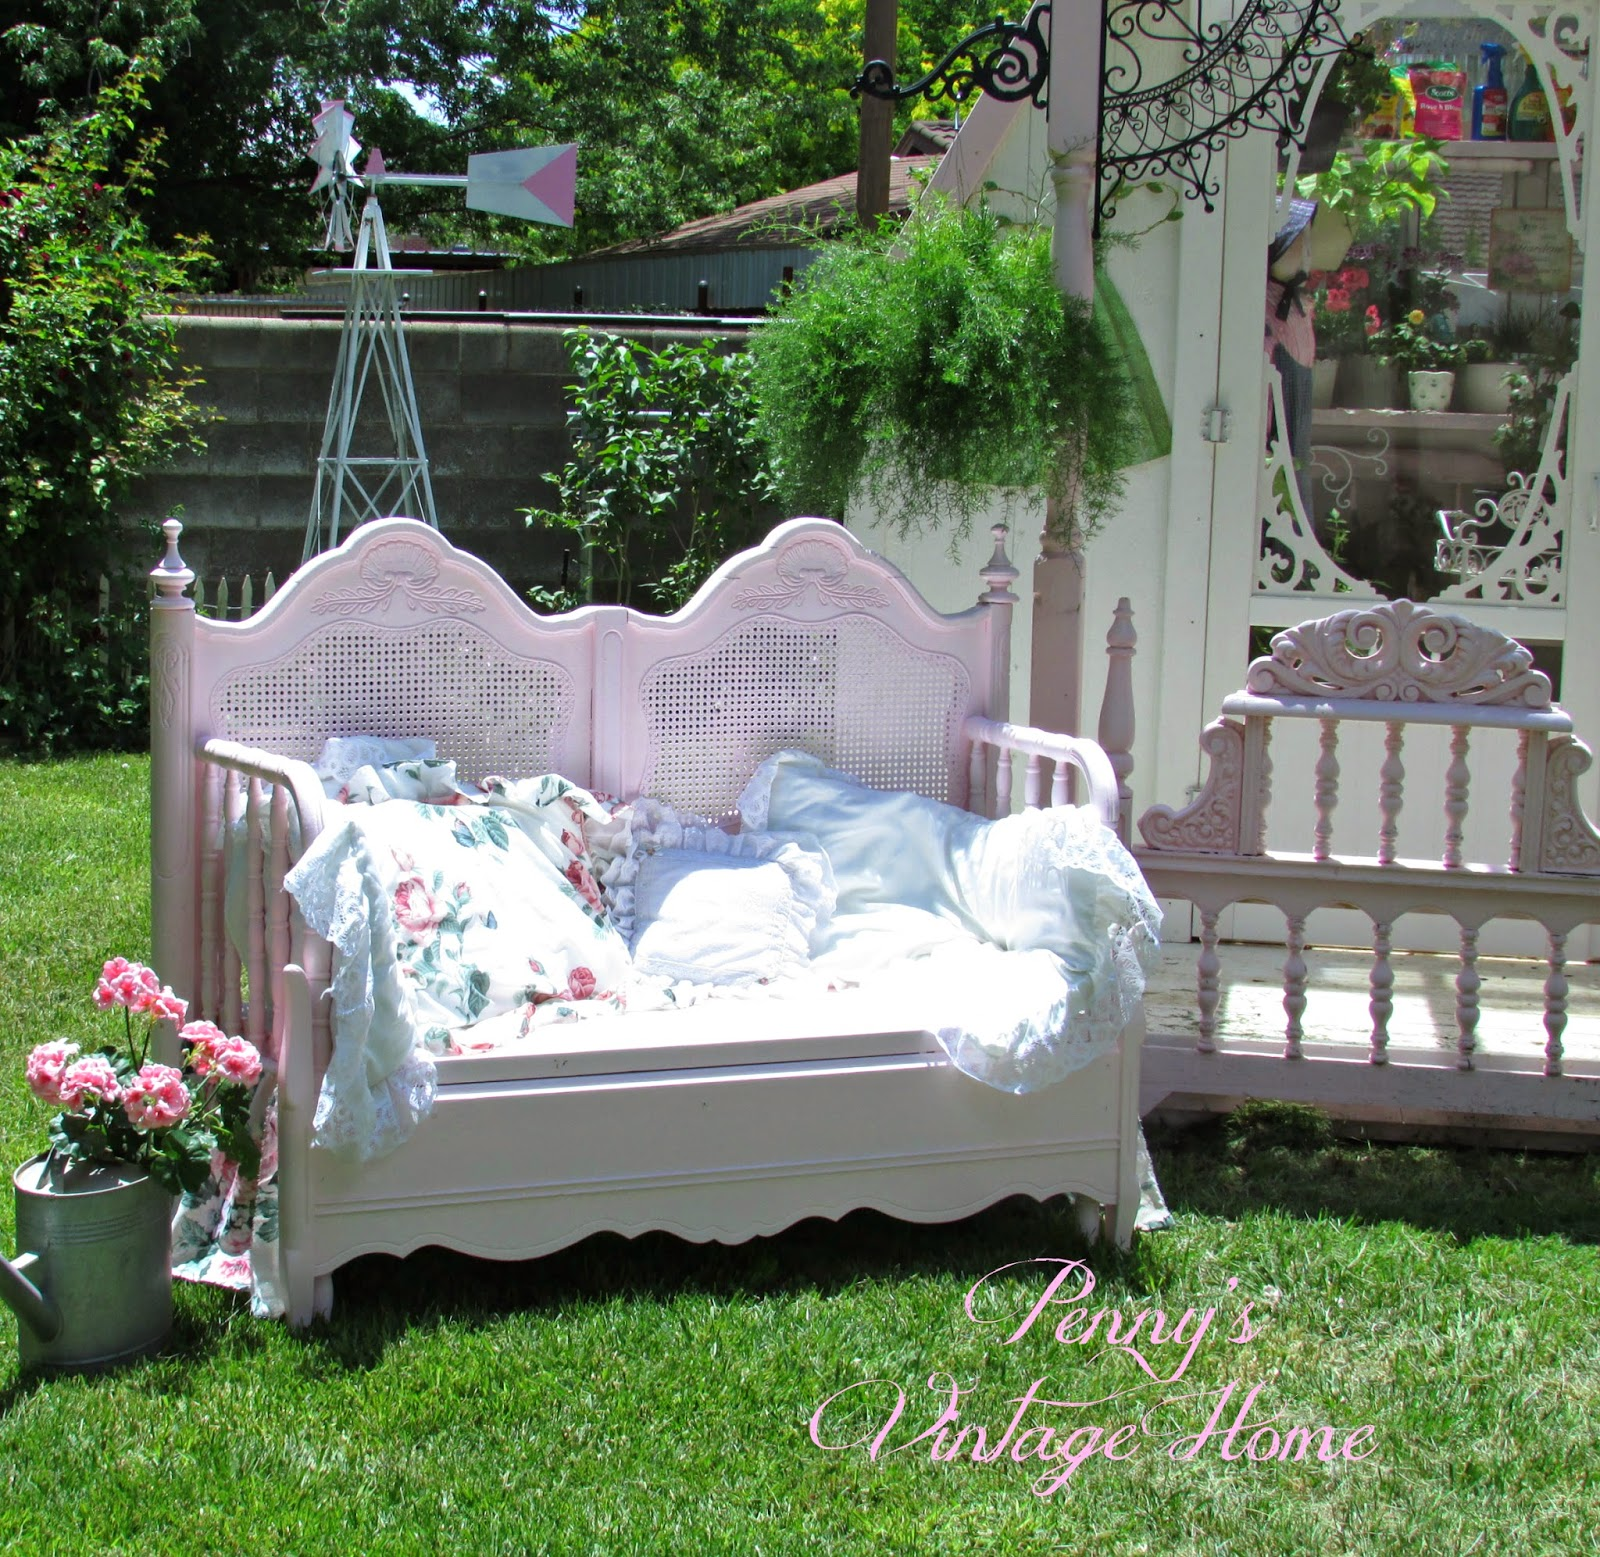 Bench Out Of Headboard Pennys Vintage Home Headboard Bench